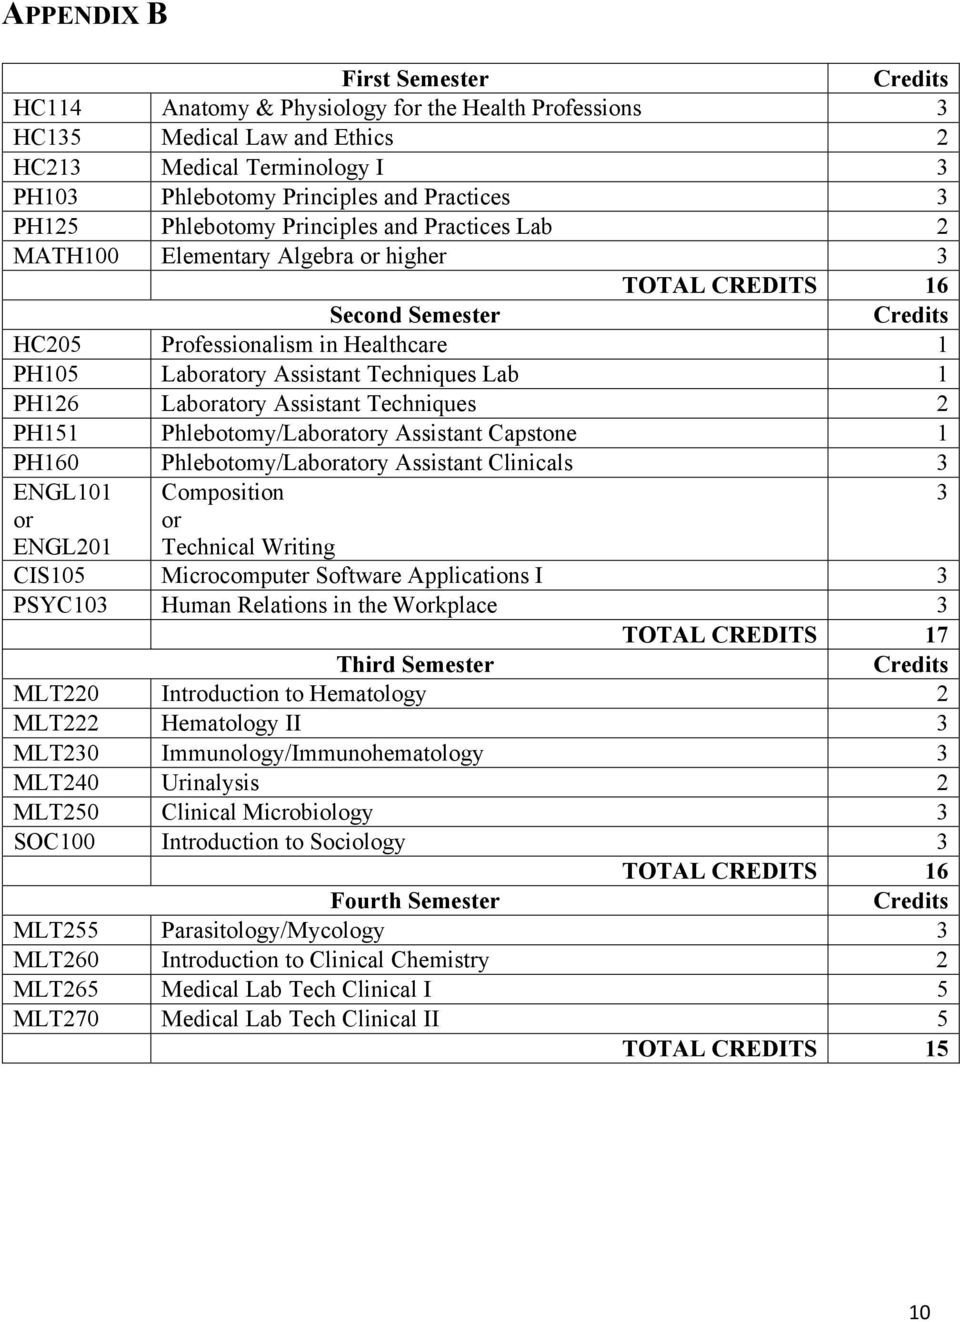 Techniques Lab 1 PH126 Laboratory Assistant Techniques 2 PH151 Phlebotomy/Laboratory Assistant Capstone 1 PH160 Phlebotomy/Laboratory Assistant Clinicals 3 ENGL101 Composition 3 or ENGL201 or